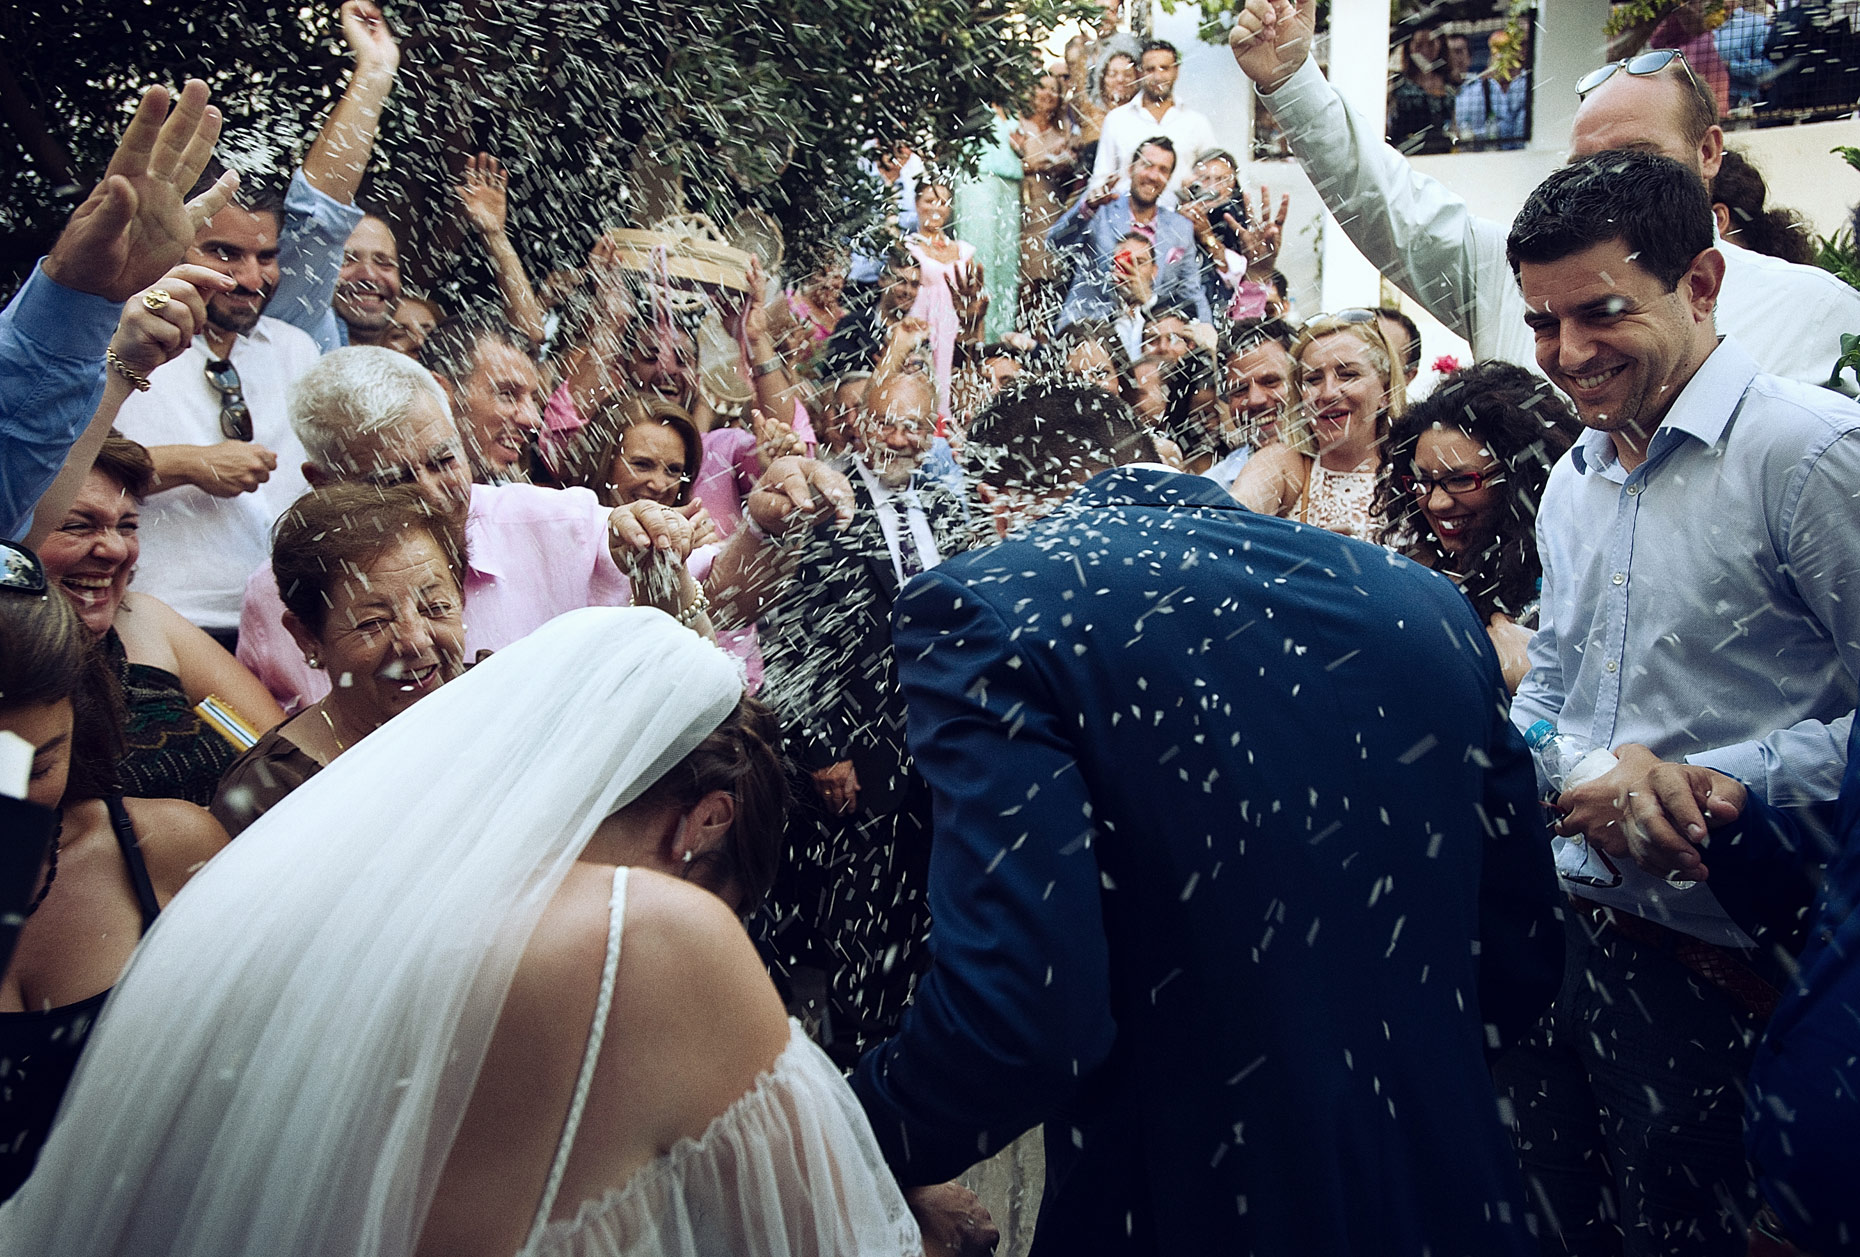 skyros_wedding_photographer_41